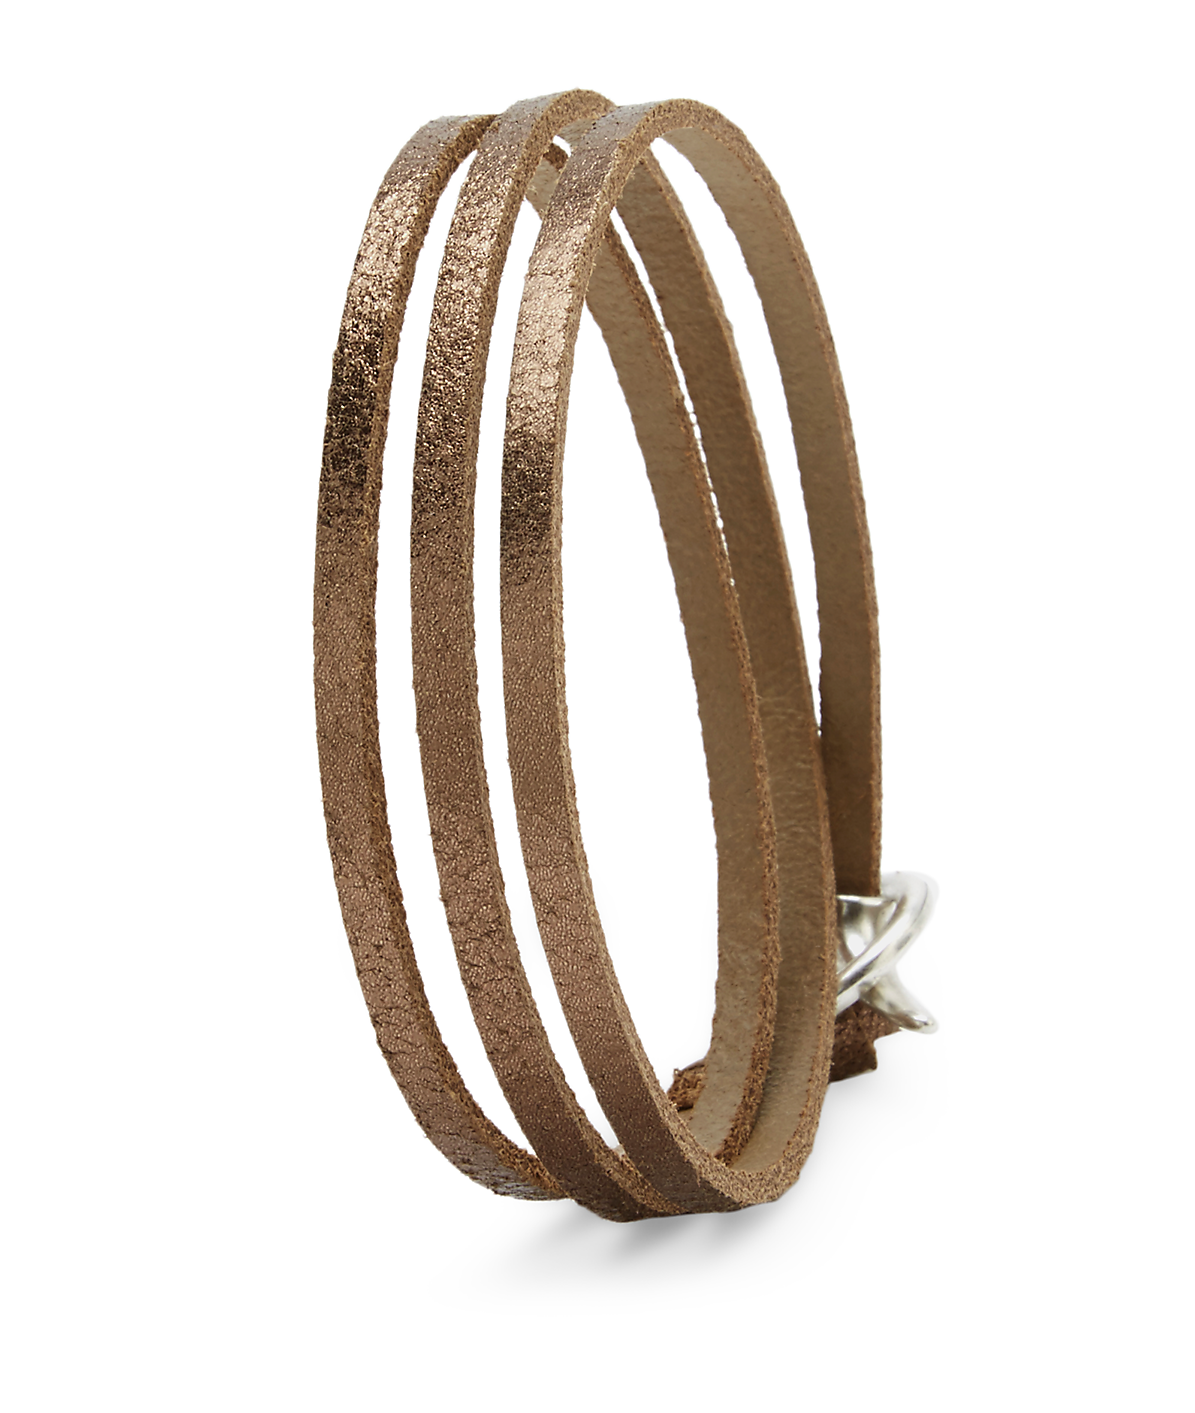 Joy leather bracelet from liebeskind